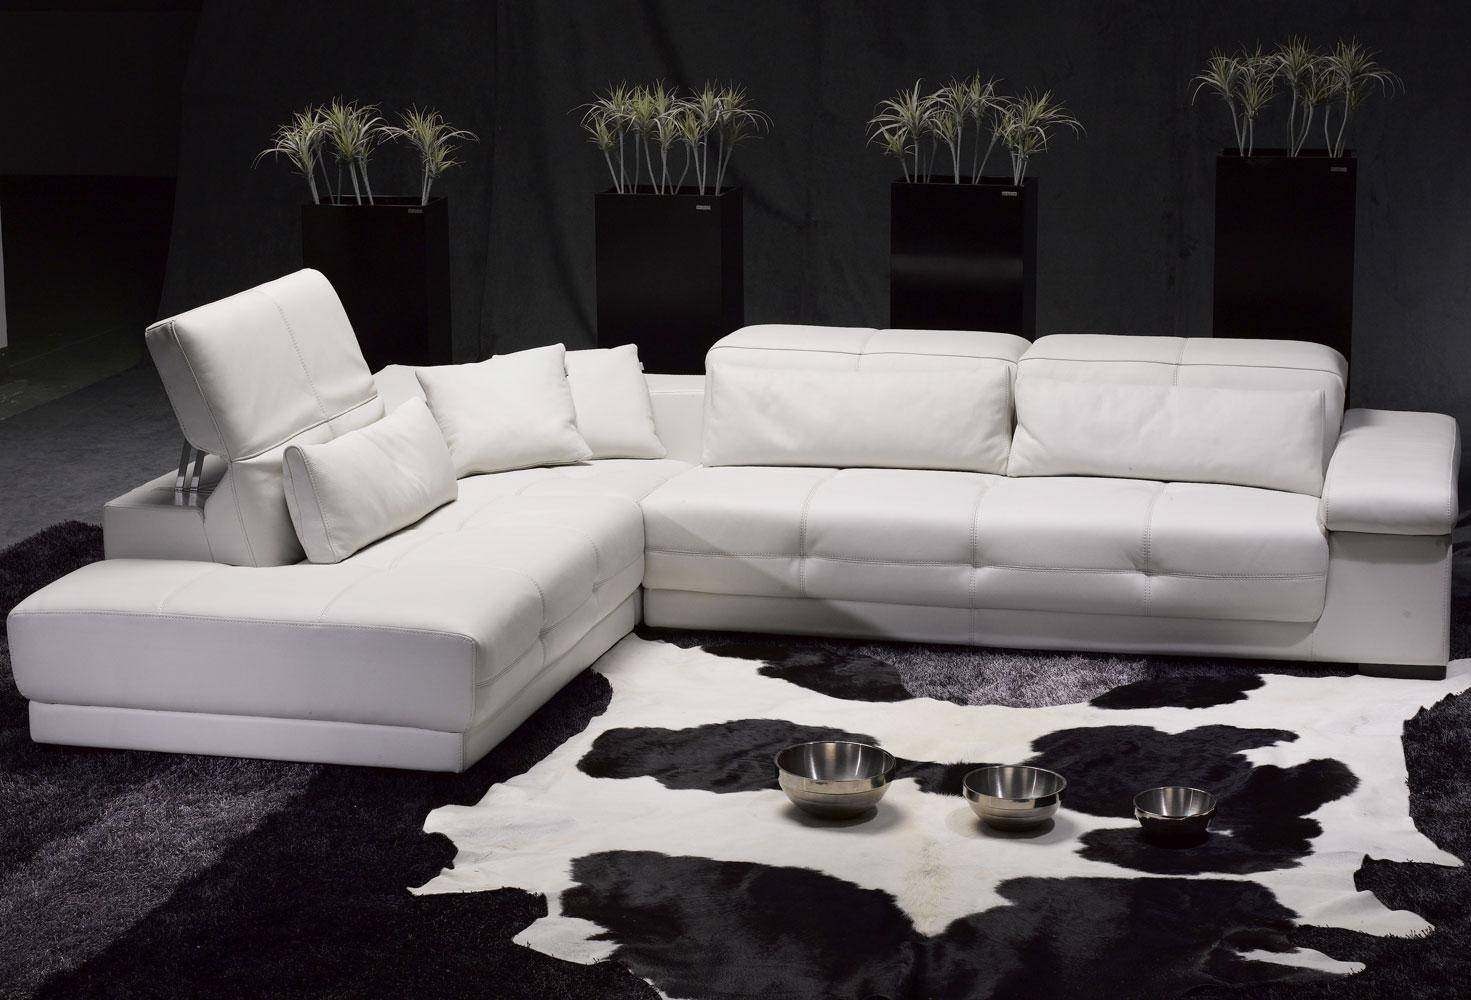 High End Couches Glamorous High End Sofas | Goodca Sofa regarding High End Leather Sectional Sofa (Image 5 of 25)